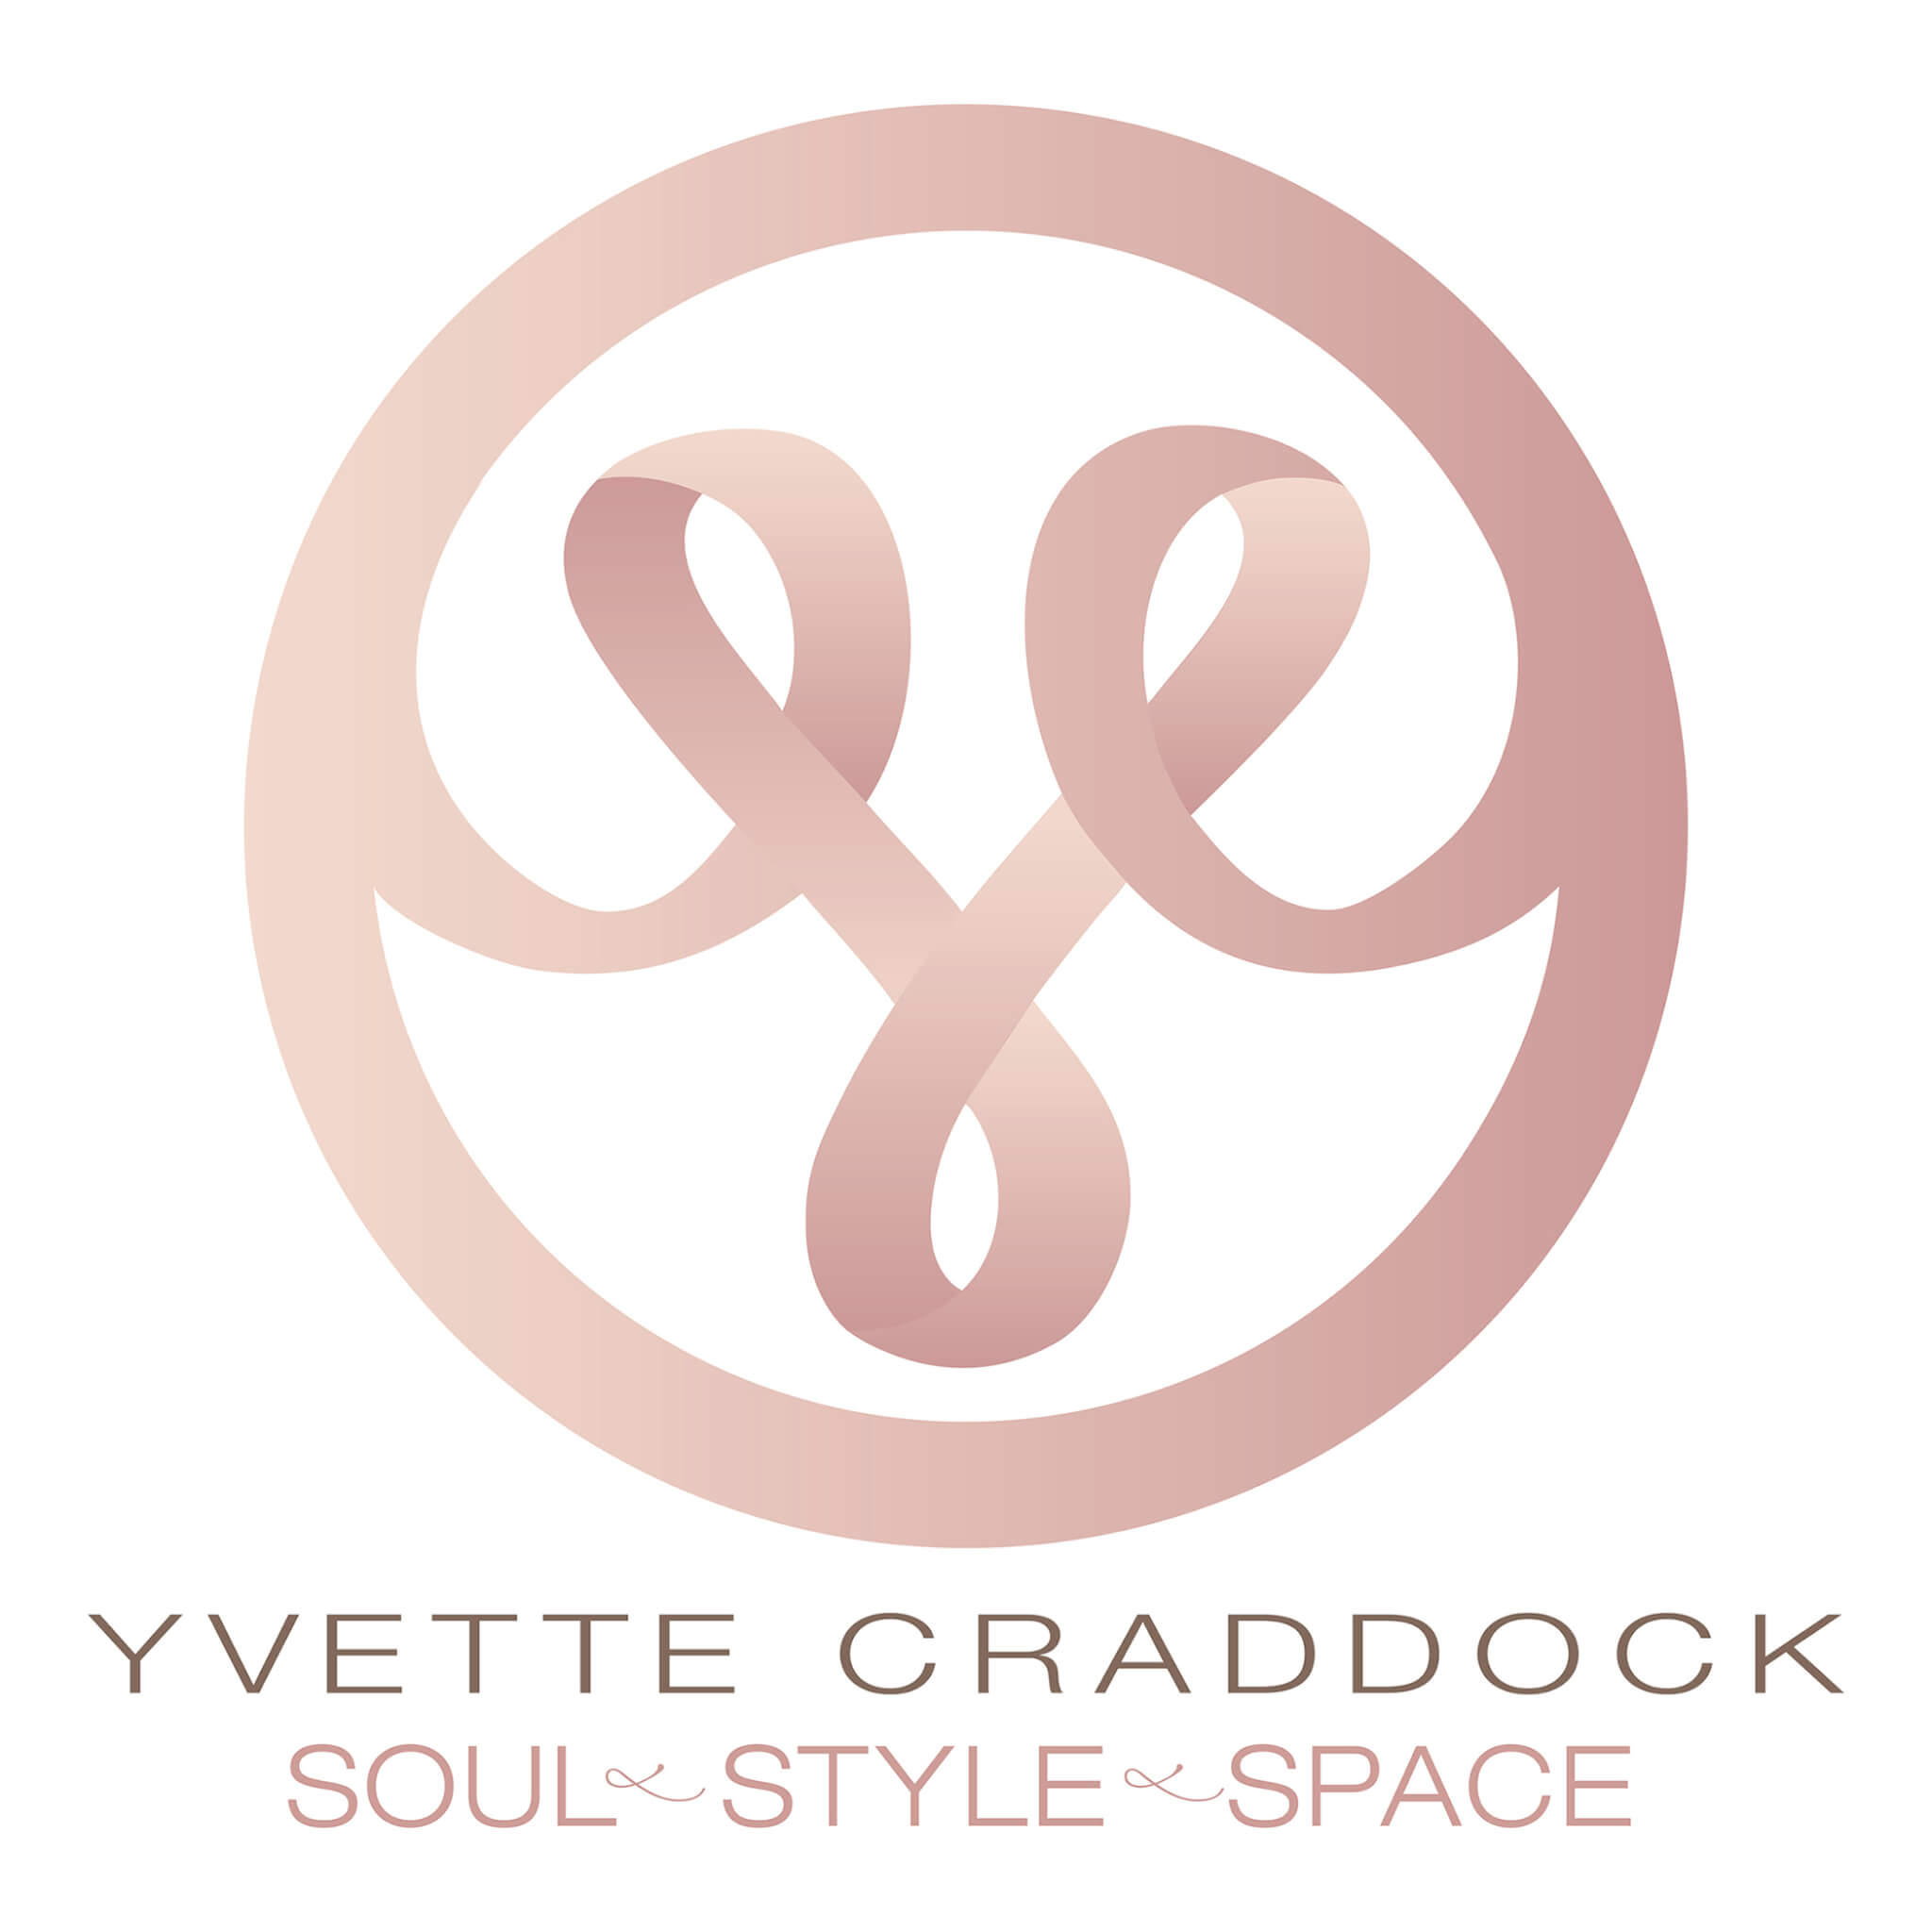 Yvette Craddock Designs - Distinctive Luxury Interior Design + Experiences